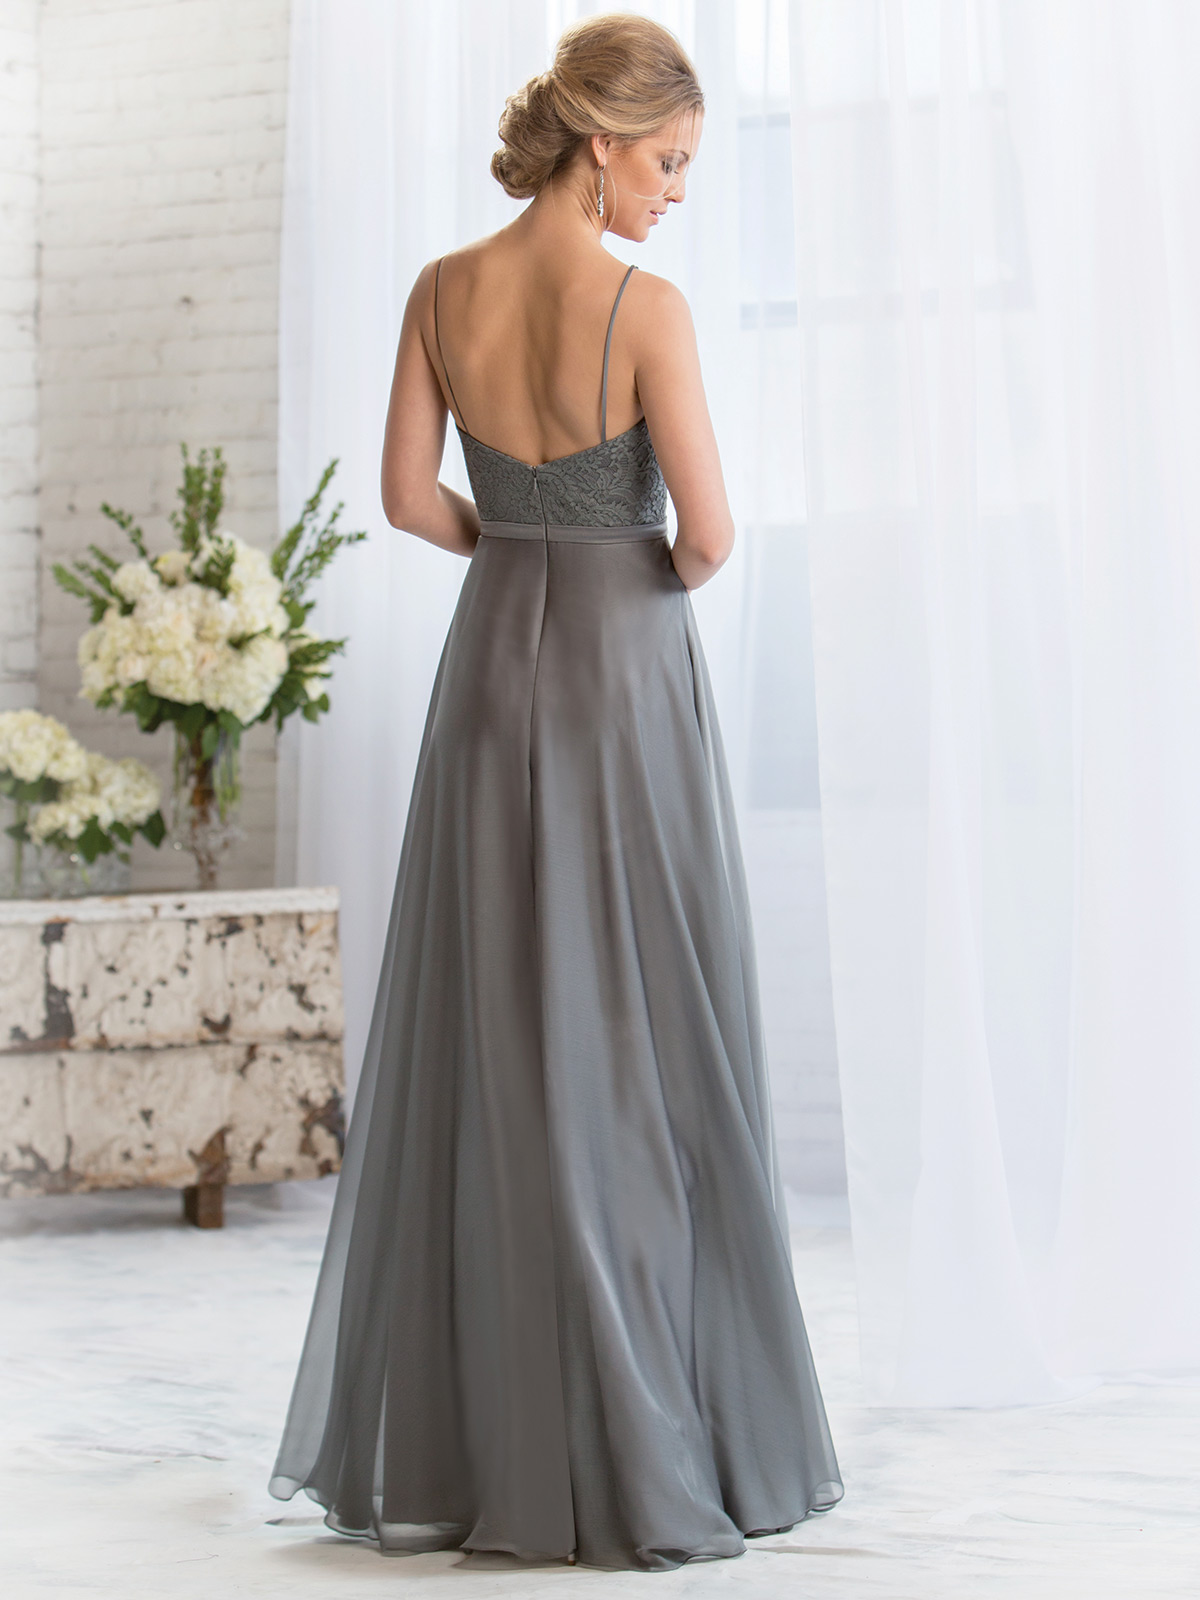 Belsoie bridesmaid dress l164070 dimitradesigns exquisite chiffon floor length bridesmaid dress belsoie l164070 ombrellifo Choice Image